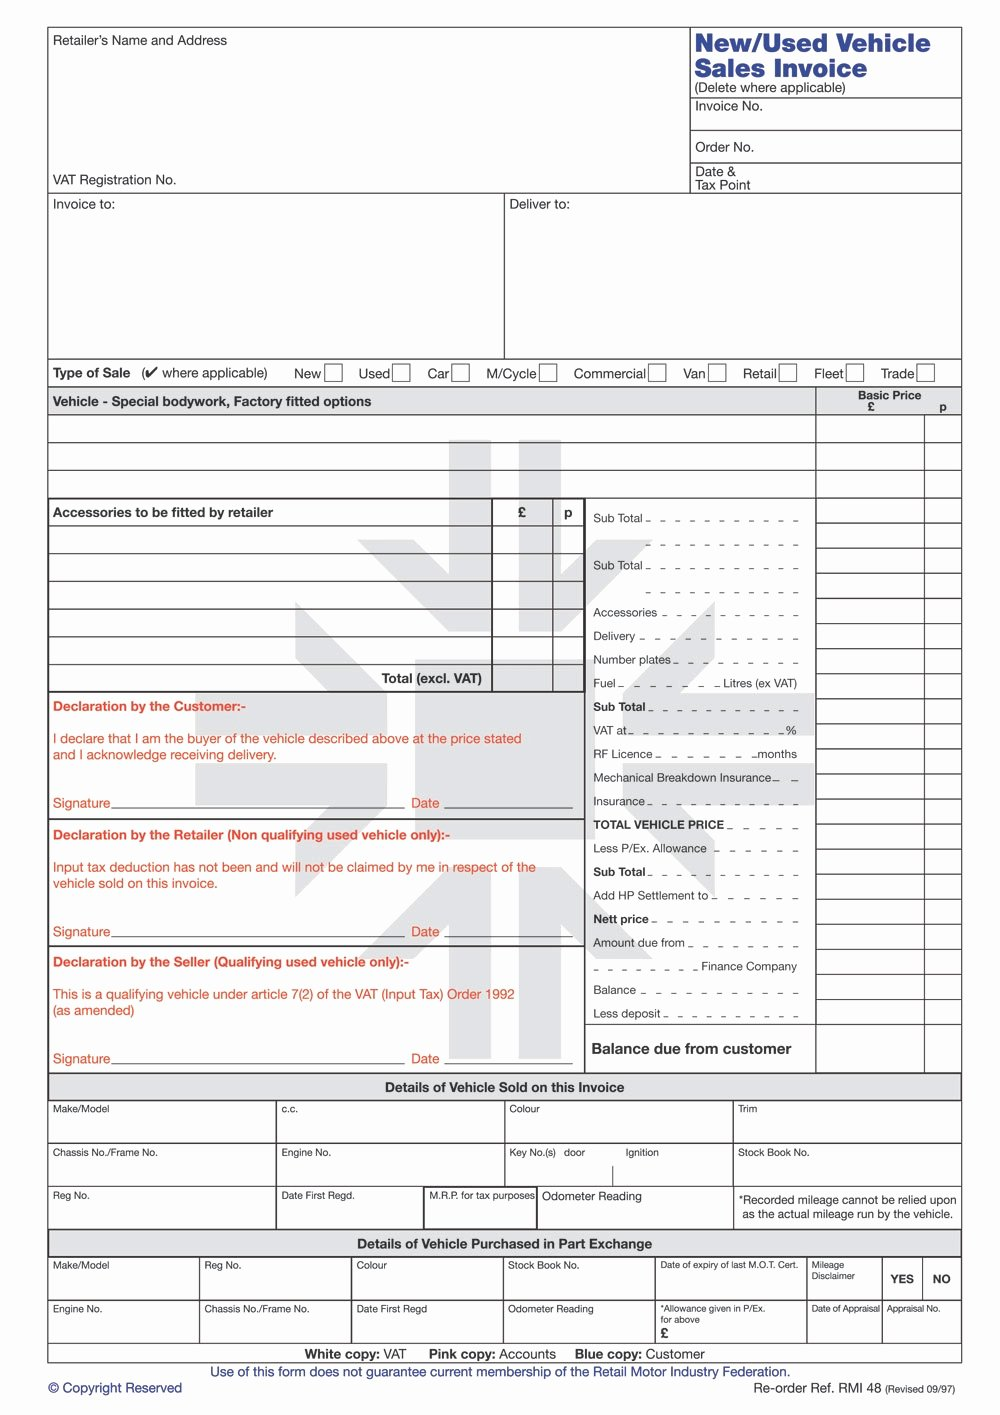 Car Sales Invoice Template New Vehicle Sales Invoice Invoice Template Ideas